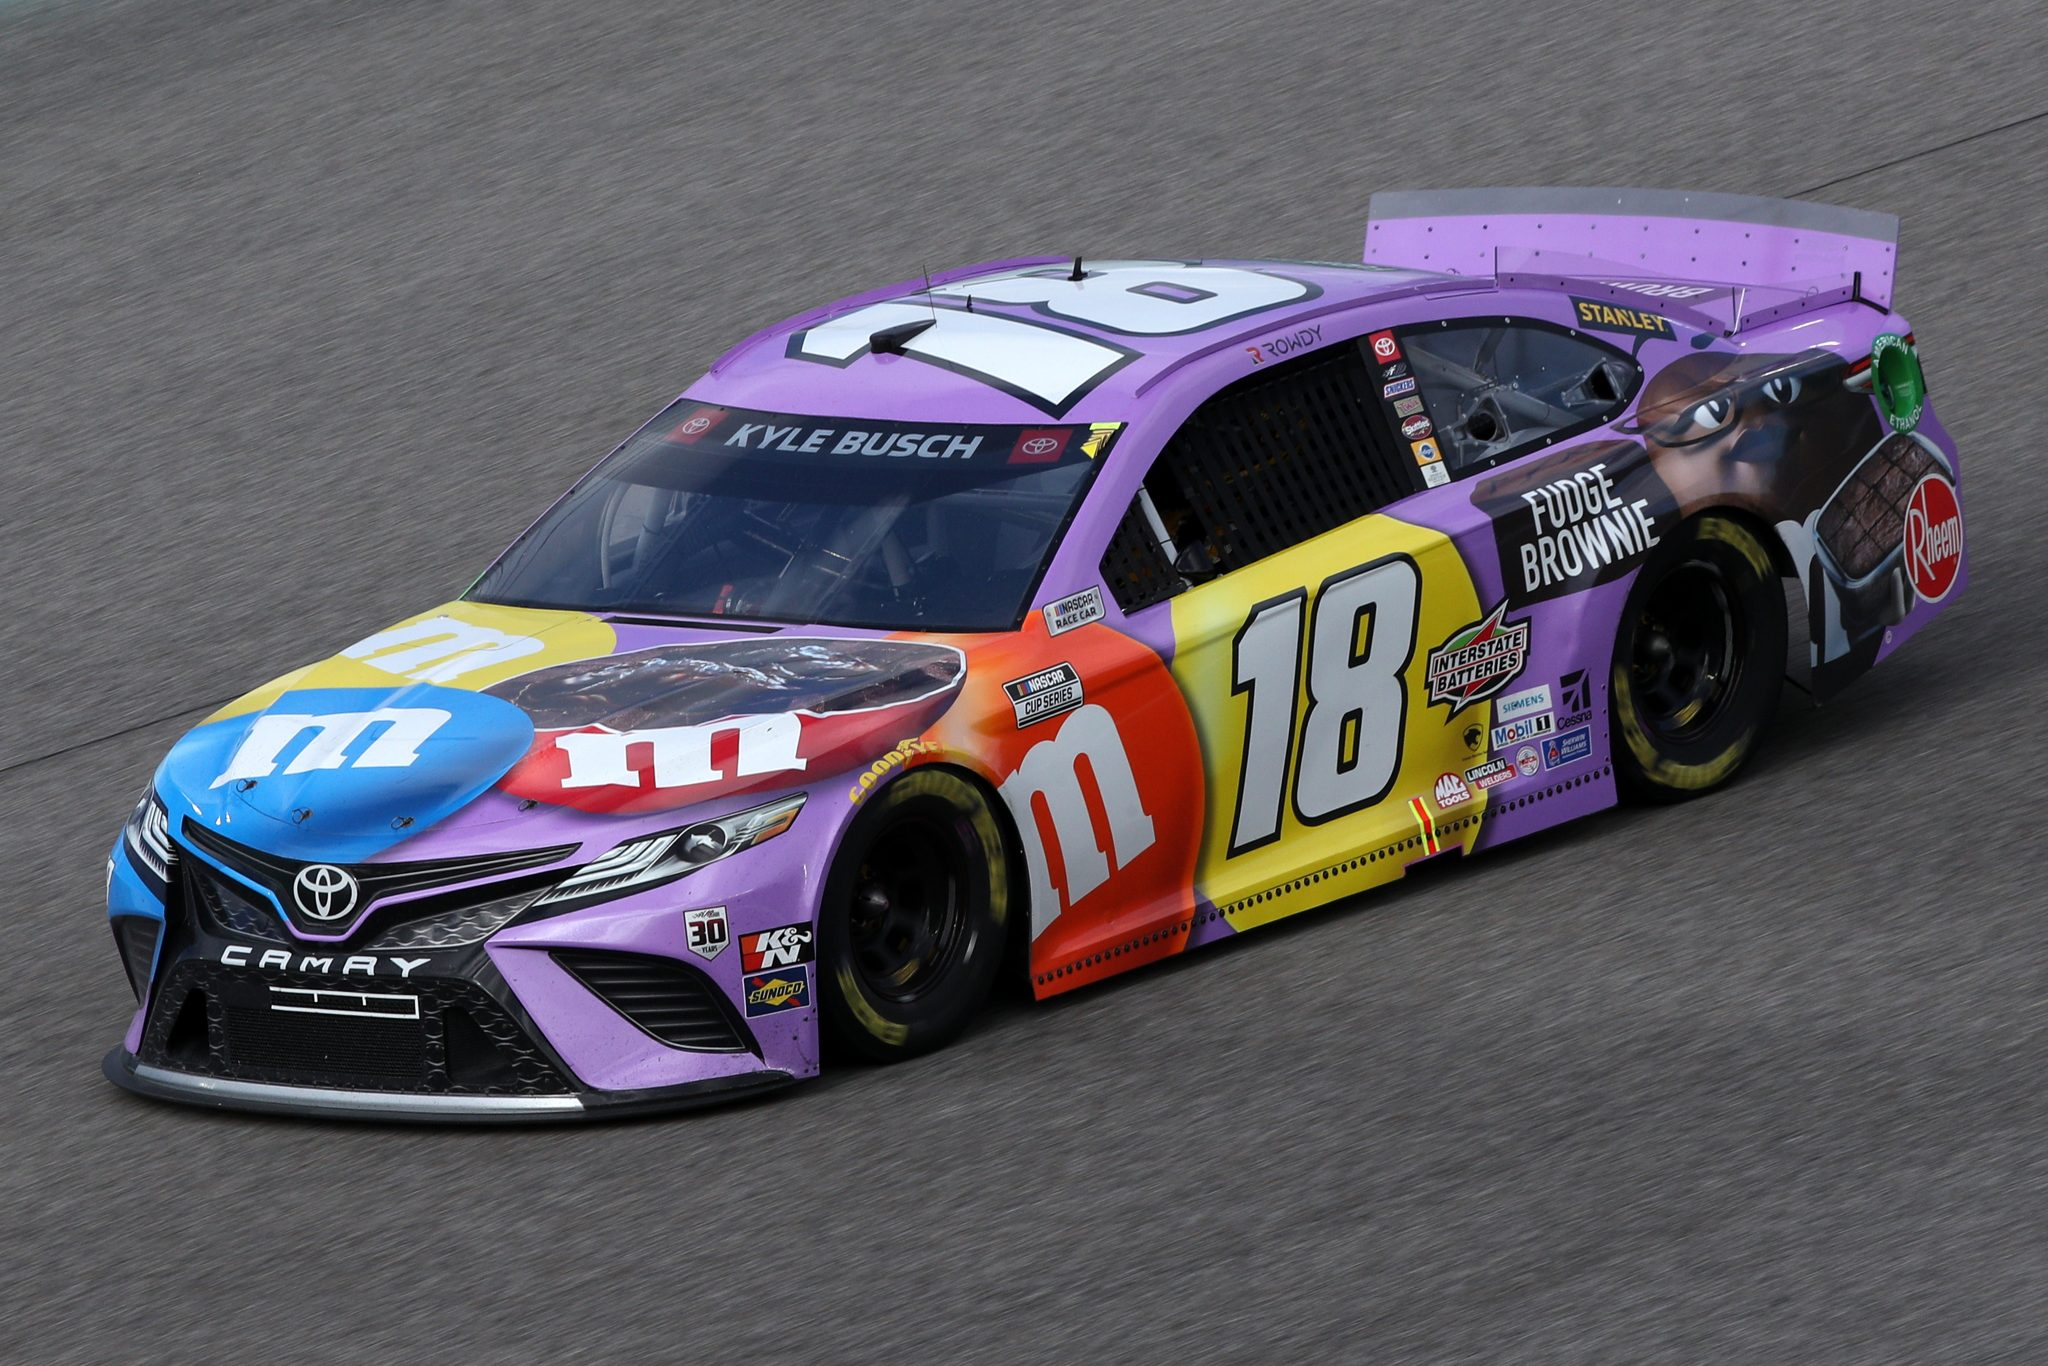 HOMESTEAD, FLORIDA - FEBRUARY 28: Kyle Busch, driver of the #18 M&M's Fudge Brownie Toyota, drives during the NASCAR Cup Series Dixie Vodka 400 at Homestead-Miami Speedway on February 28, 2021 in Homestead, Florida. (Photo by Sean Gardner/Getty Images) | Getty Images